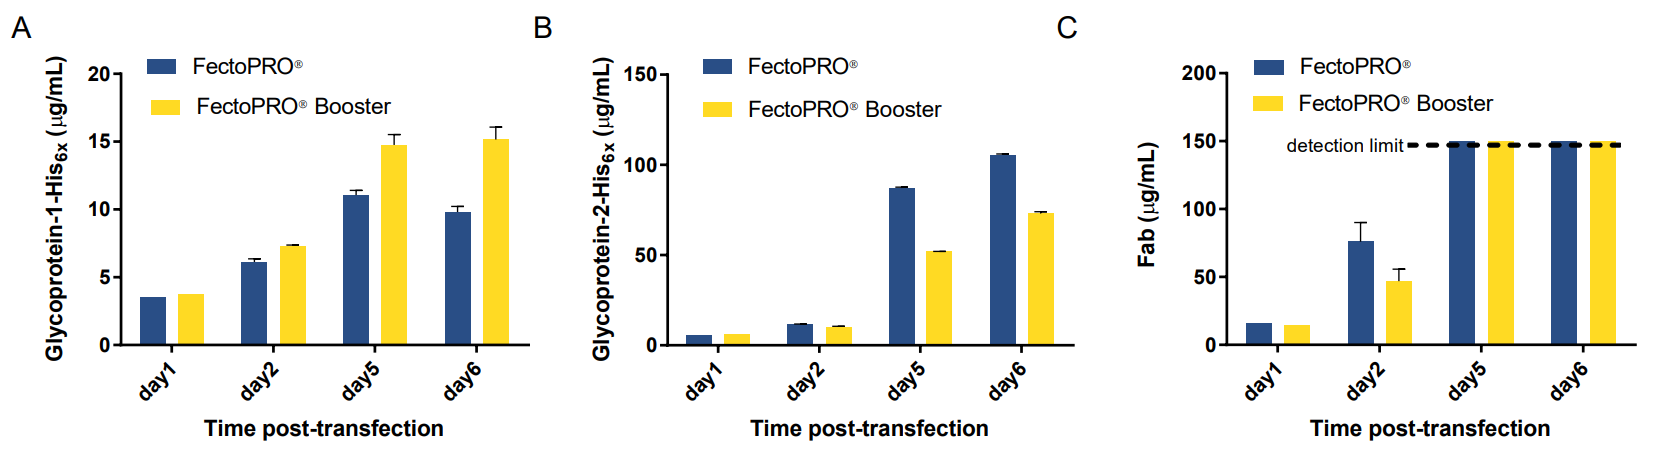 FectoPRO Booster transfection